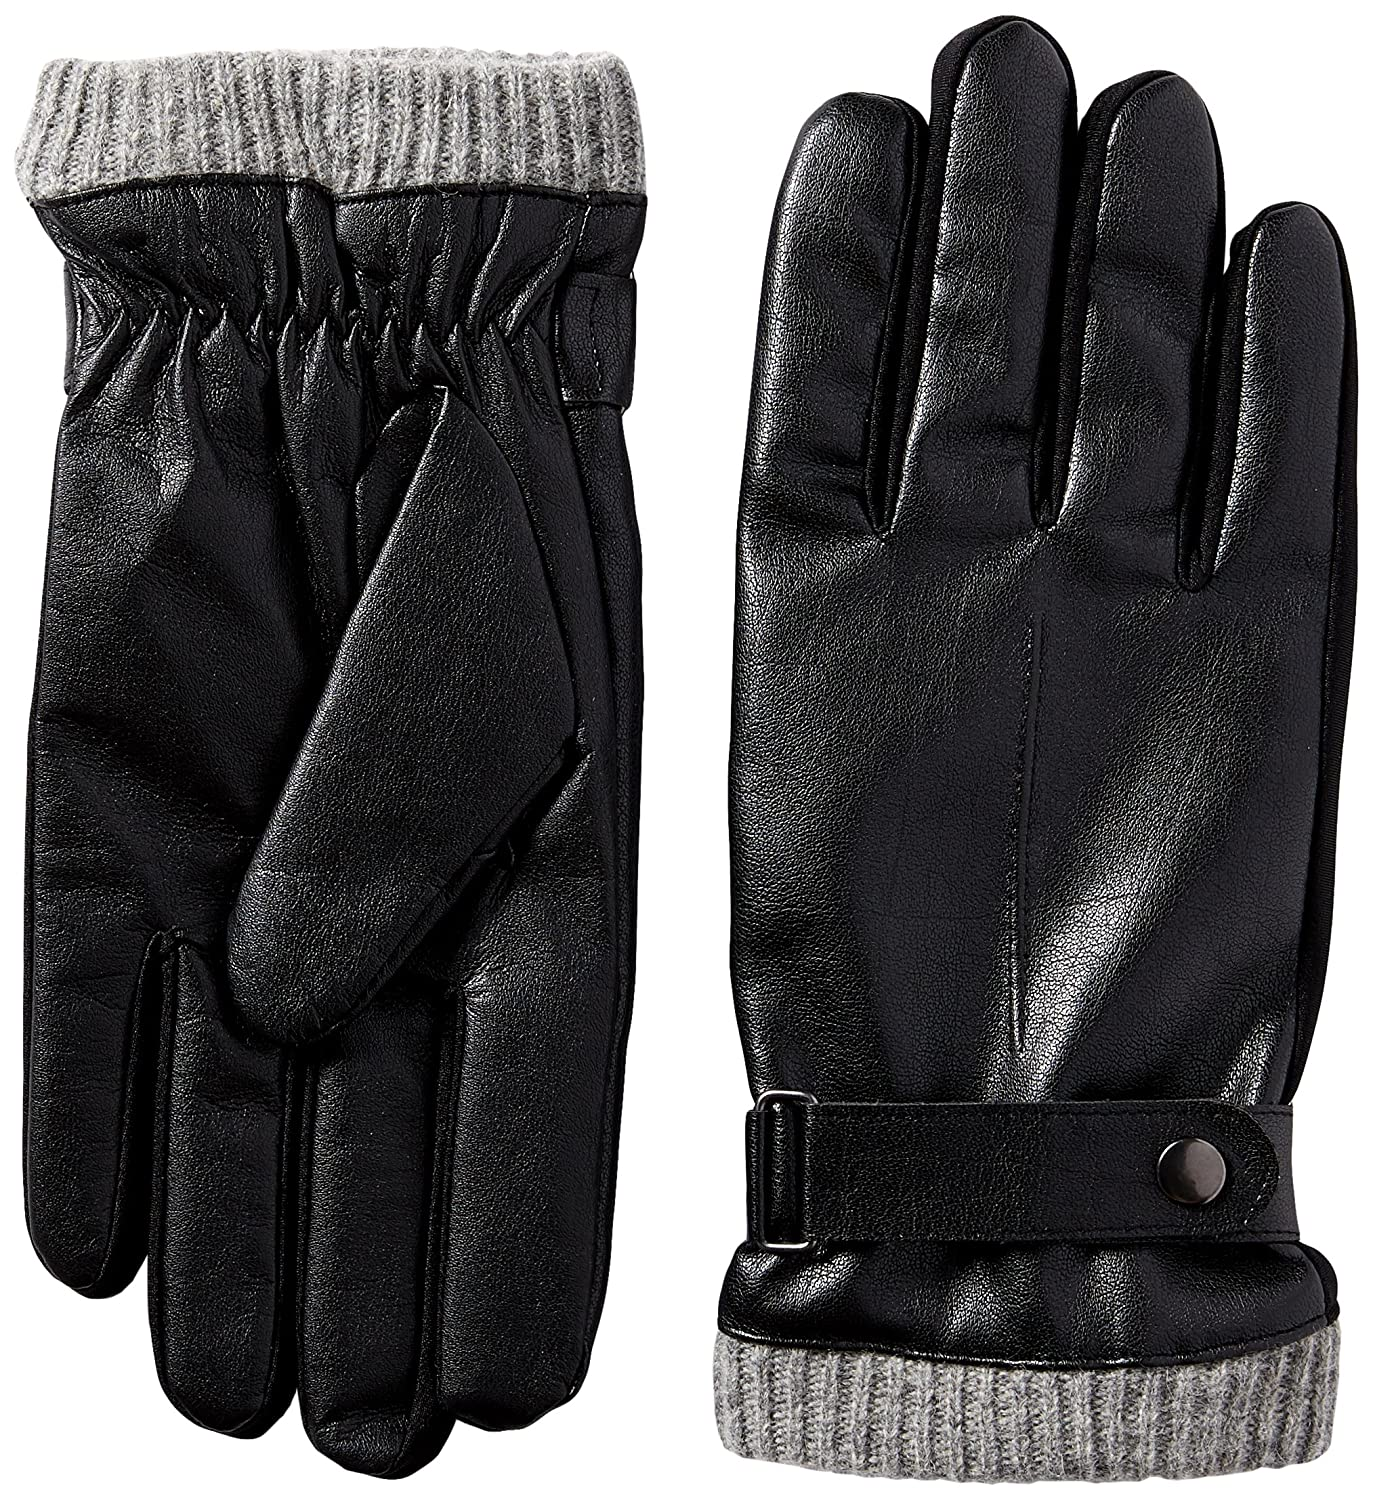 Mens gloves isotoner - Isotoner Men S Faux Leather Smartouch Gloves With Knit Cuffe Black Medium At Amazon Men S Clothing Store